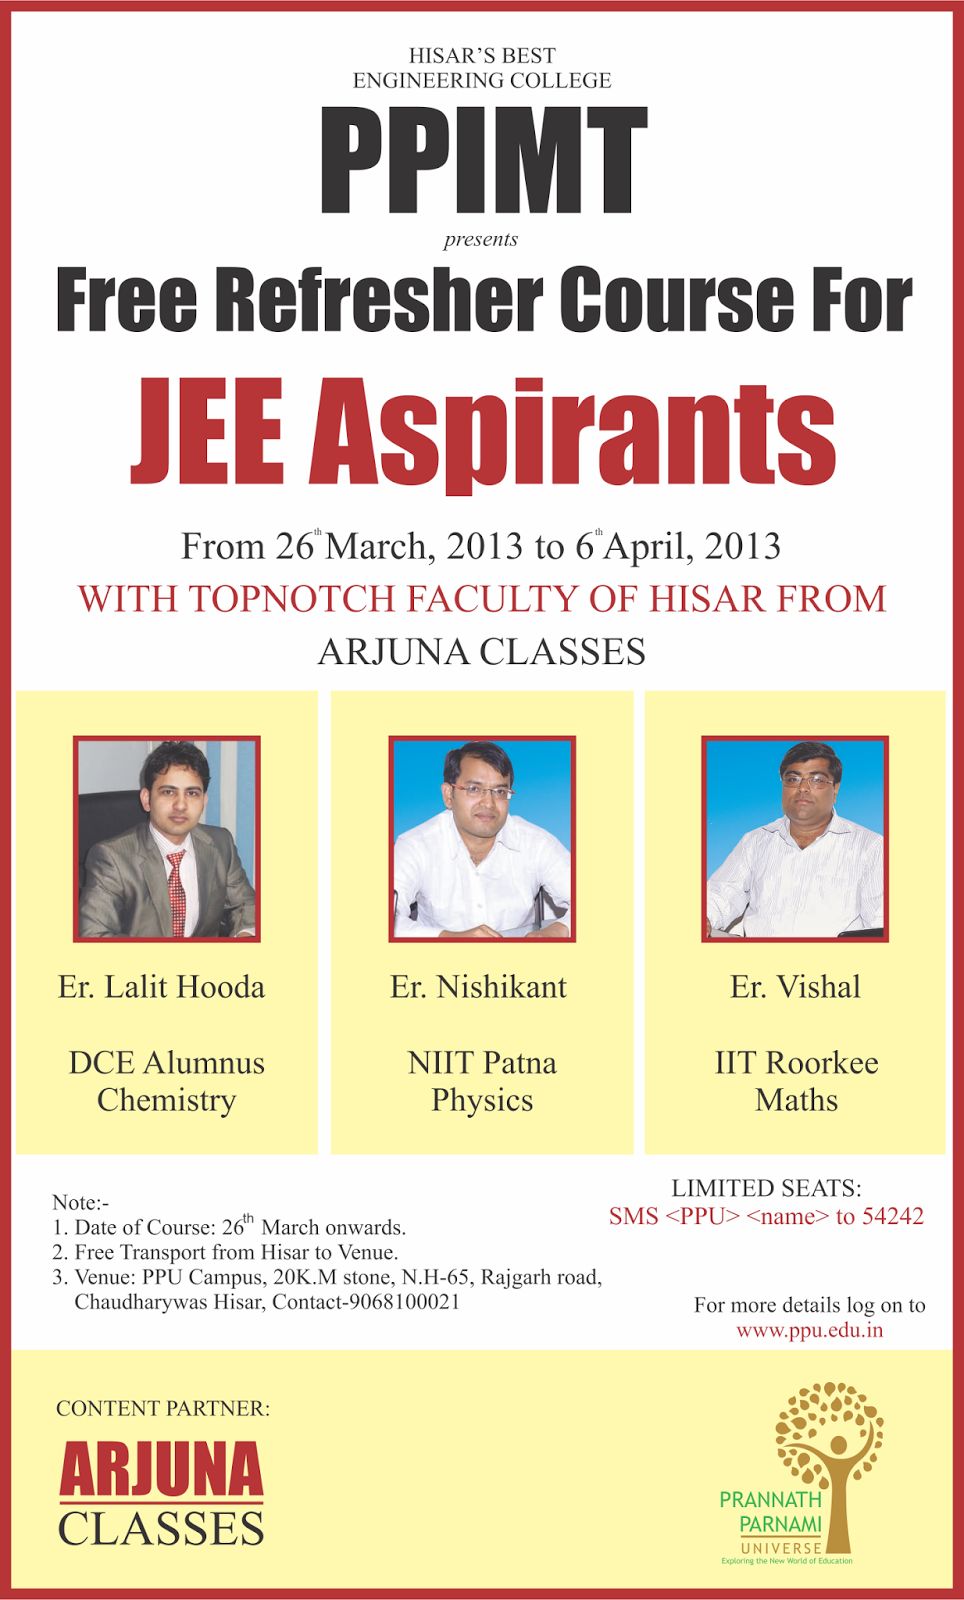 Poster design for coaching institute - Ppimt Engineering College Hisar A Event Jee Aspirants With Arjun Classes A Coaching Institute